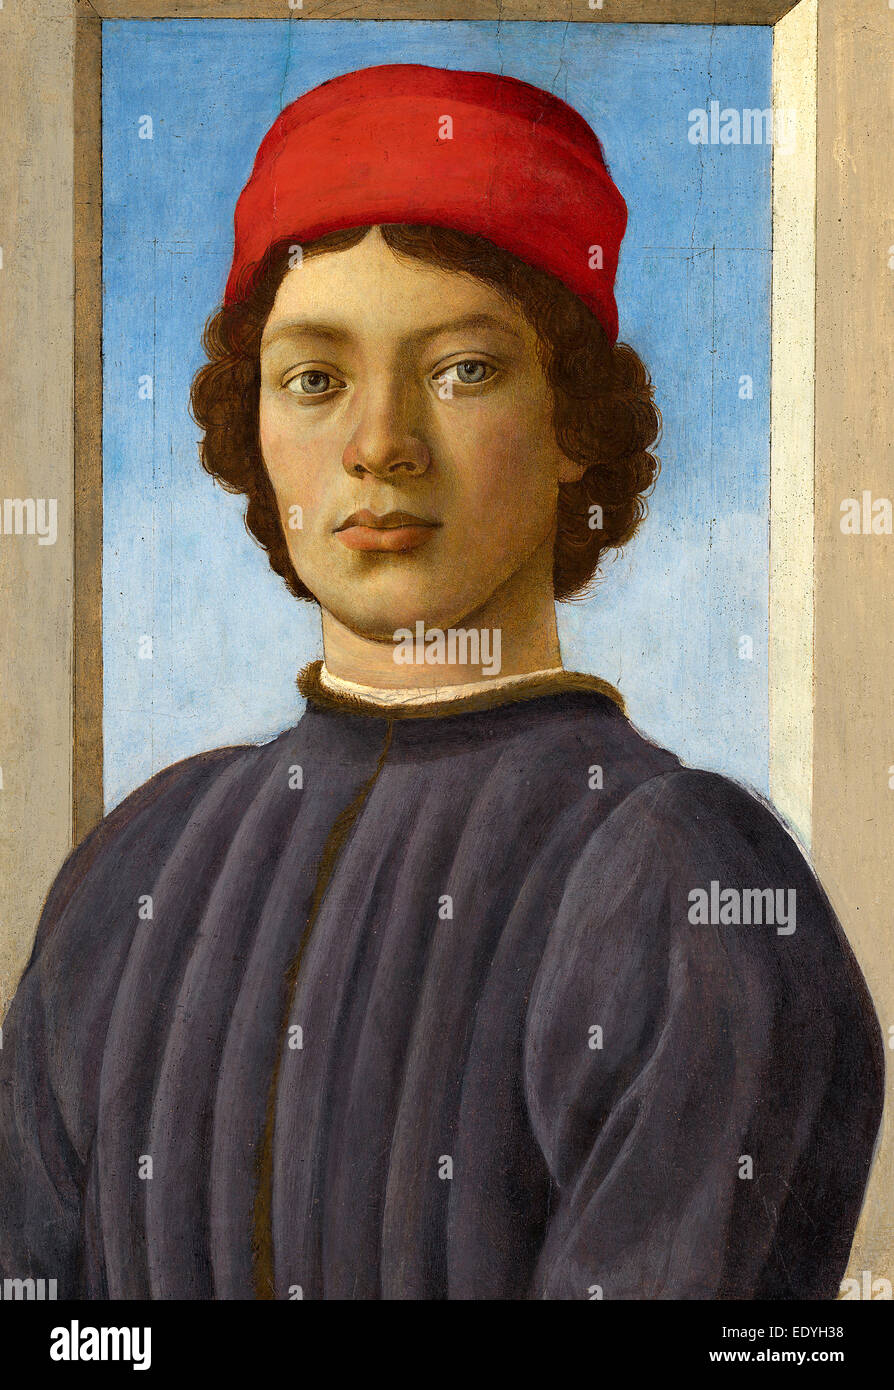 Filippino Lippi (Italian, 1457 - 1504), Portrait of a Youth, c. 1485, oil and tempera on panel - Stock Image